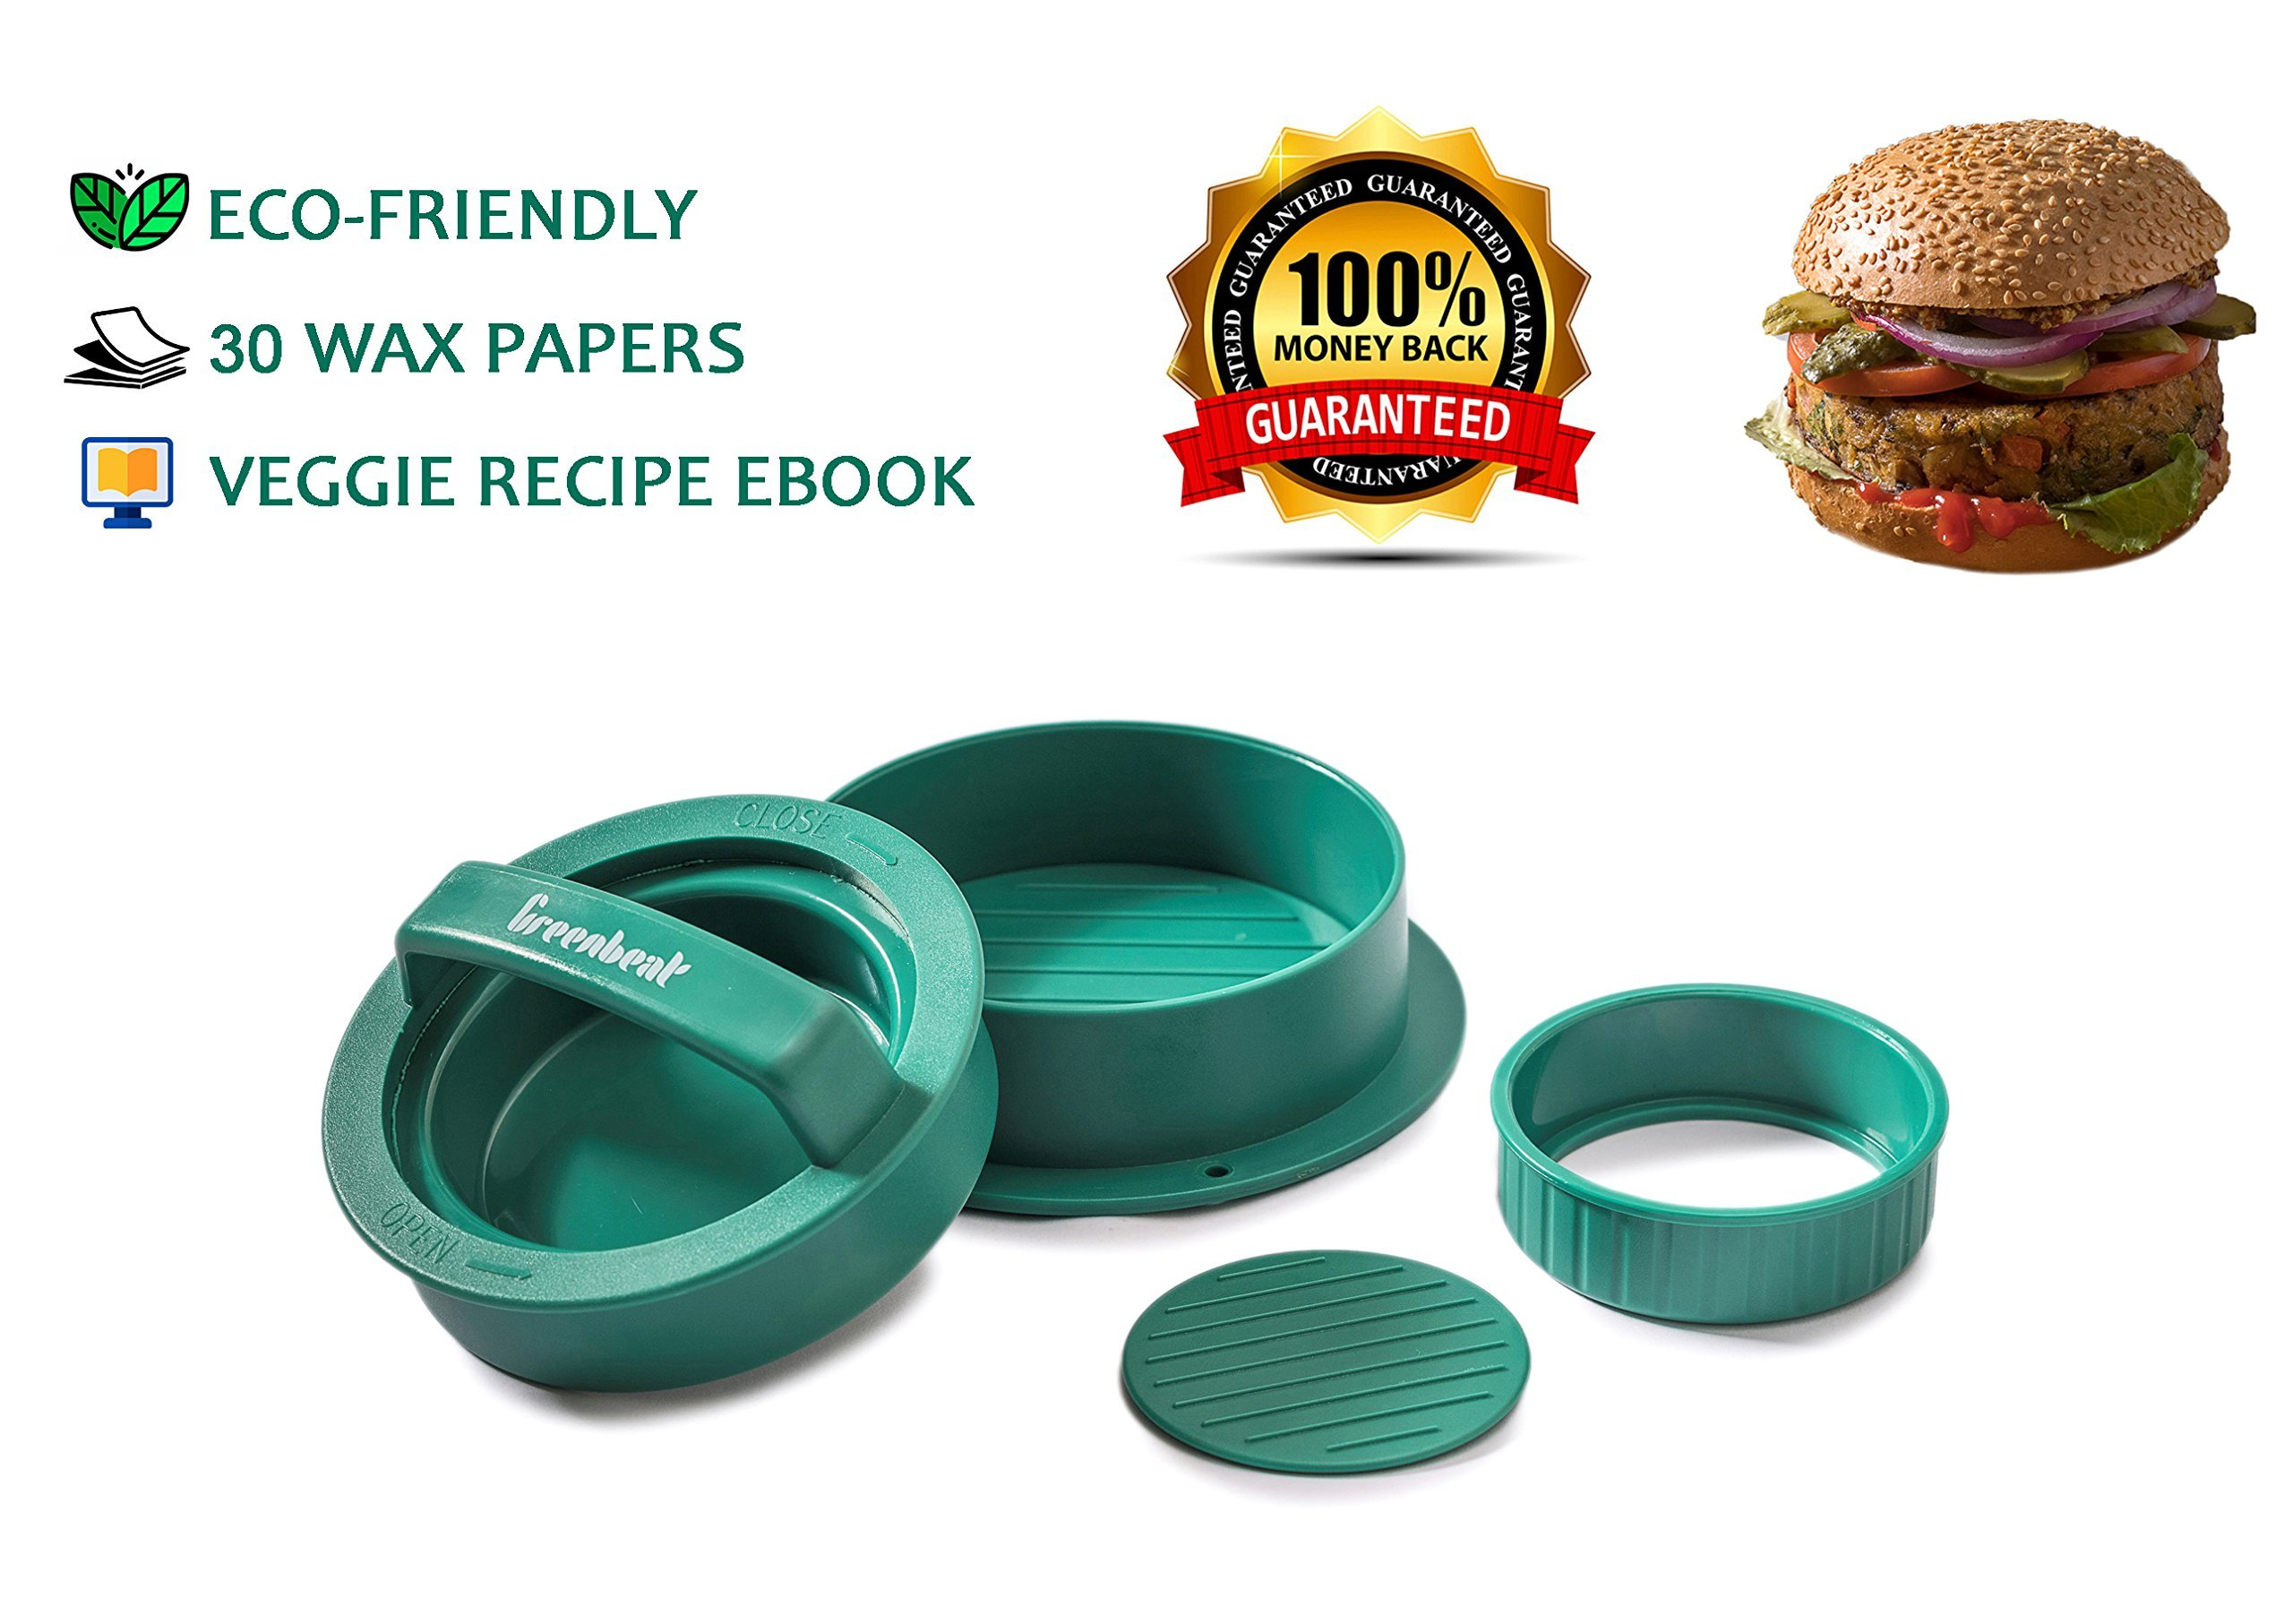 GreenBeat Stuffed Burger Press | 15 Vegetarian Recipes eBook | 30 Wax Papers - Hamburger Grill Accessories